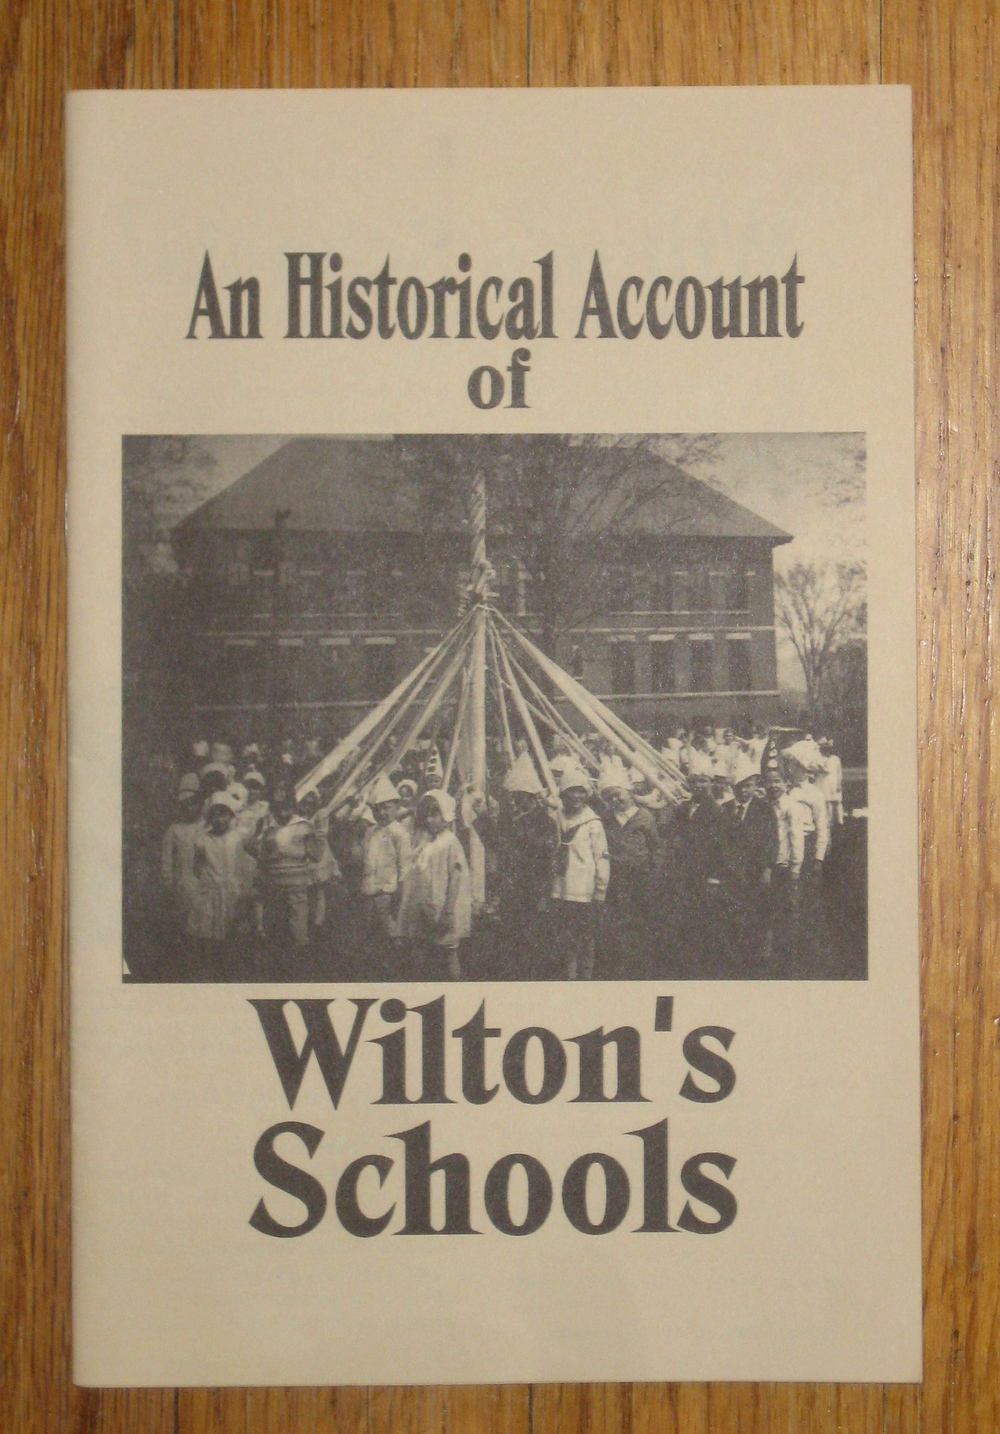 A 1930's Maypole,  Booklet from the Wilton Historical Society, used by permission